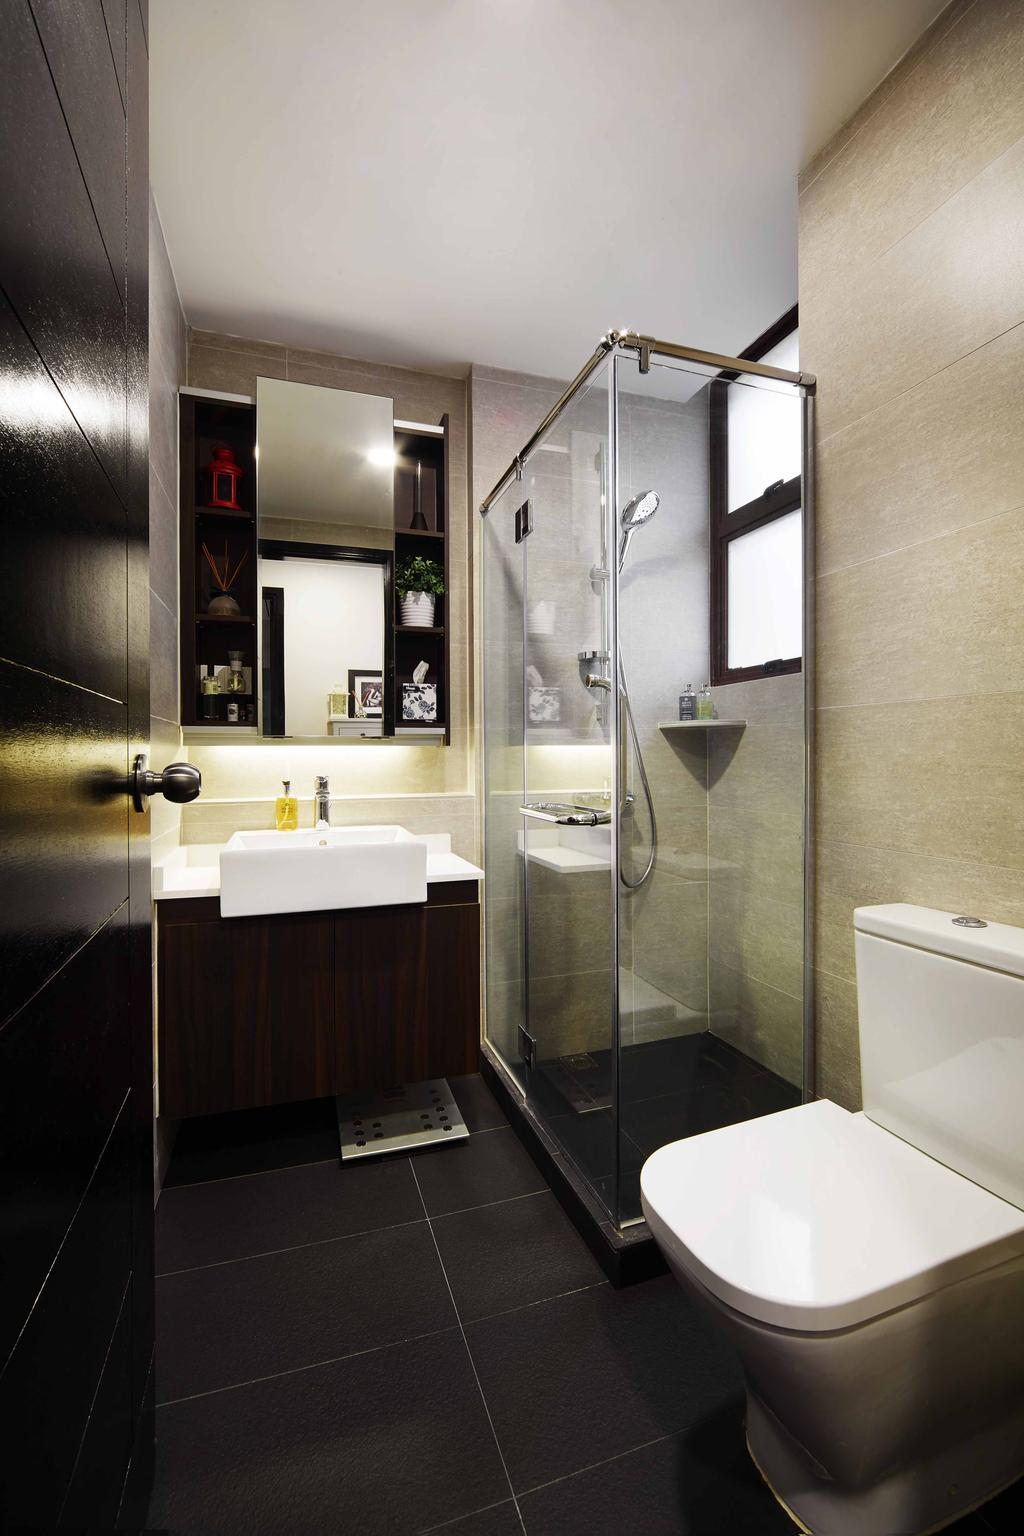 Contemporary, Condo, Bathroom, Legenda, Interior Designer, The Local INN.terior 新家室, Shower Screen, Bathroom Vanity, Bathroom Sink, Mirror, Bathroom Cabinet, Toilet Bown, Toilet Bowl, Water Closet, Shower Area, Indoors, Interior Design, Room